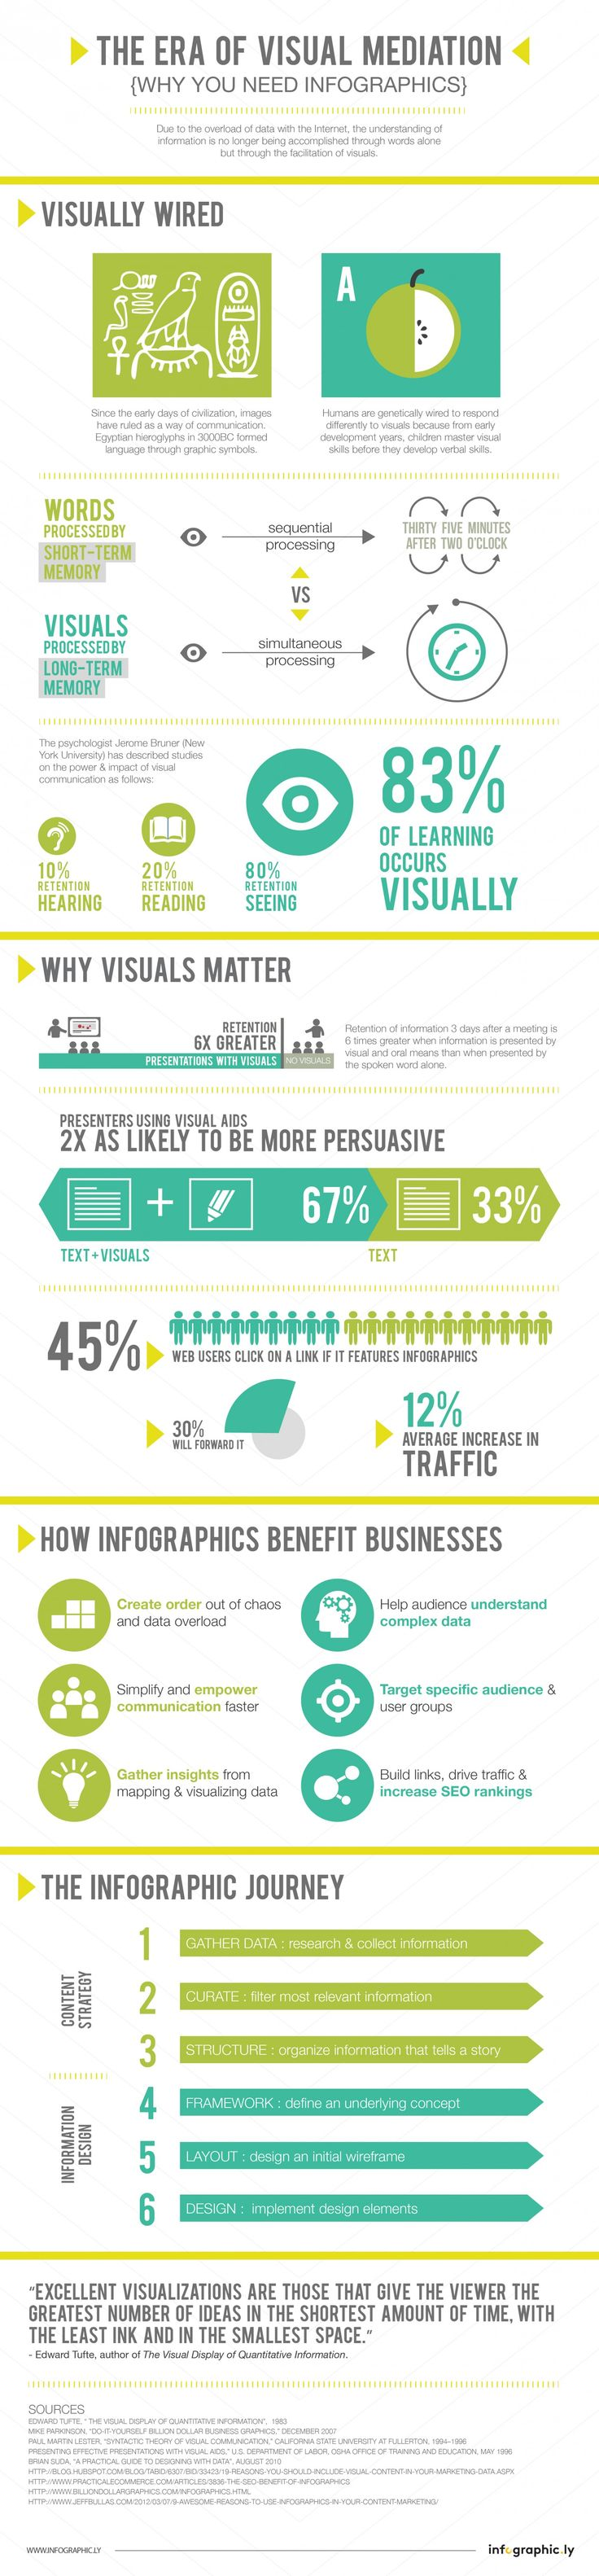 The Era of Visual Mediation Infographic. If you've ever been bored and lost focus during a visual-less presentation, you're not alone.